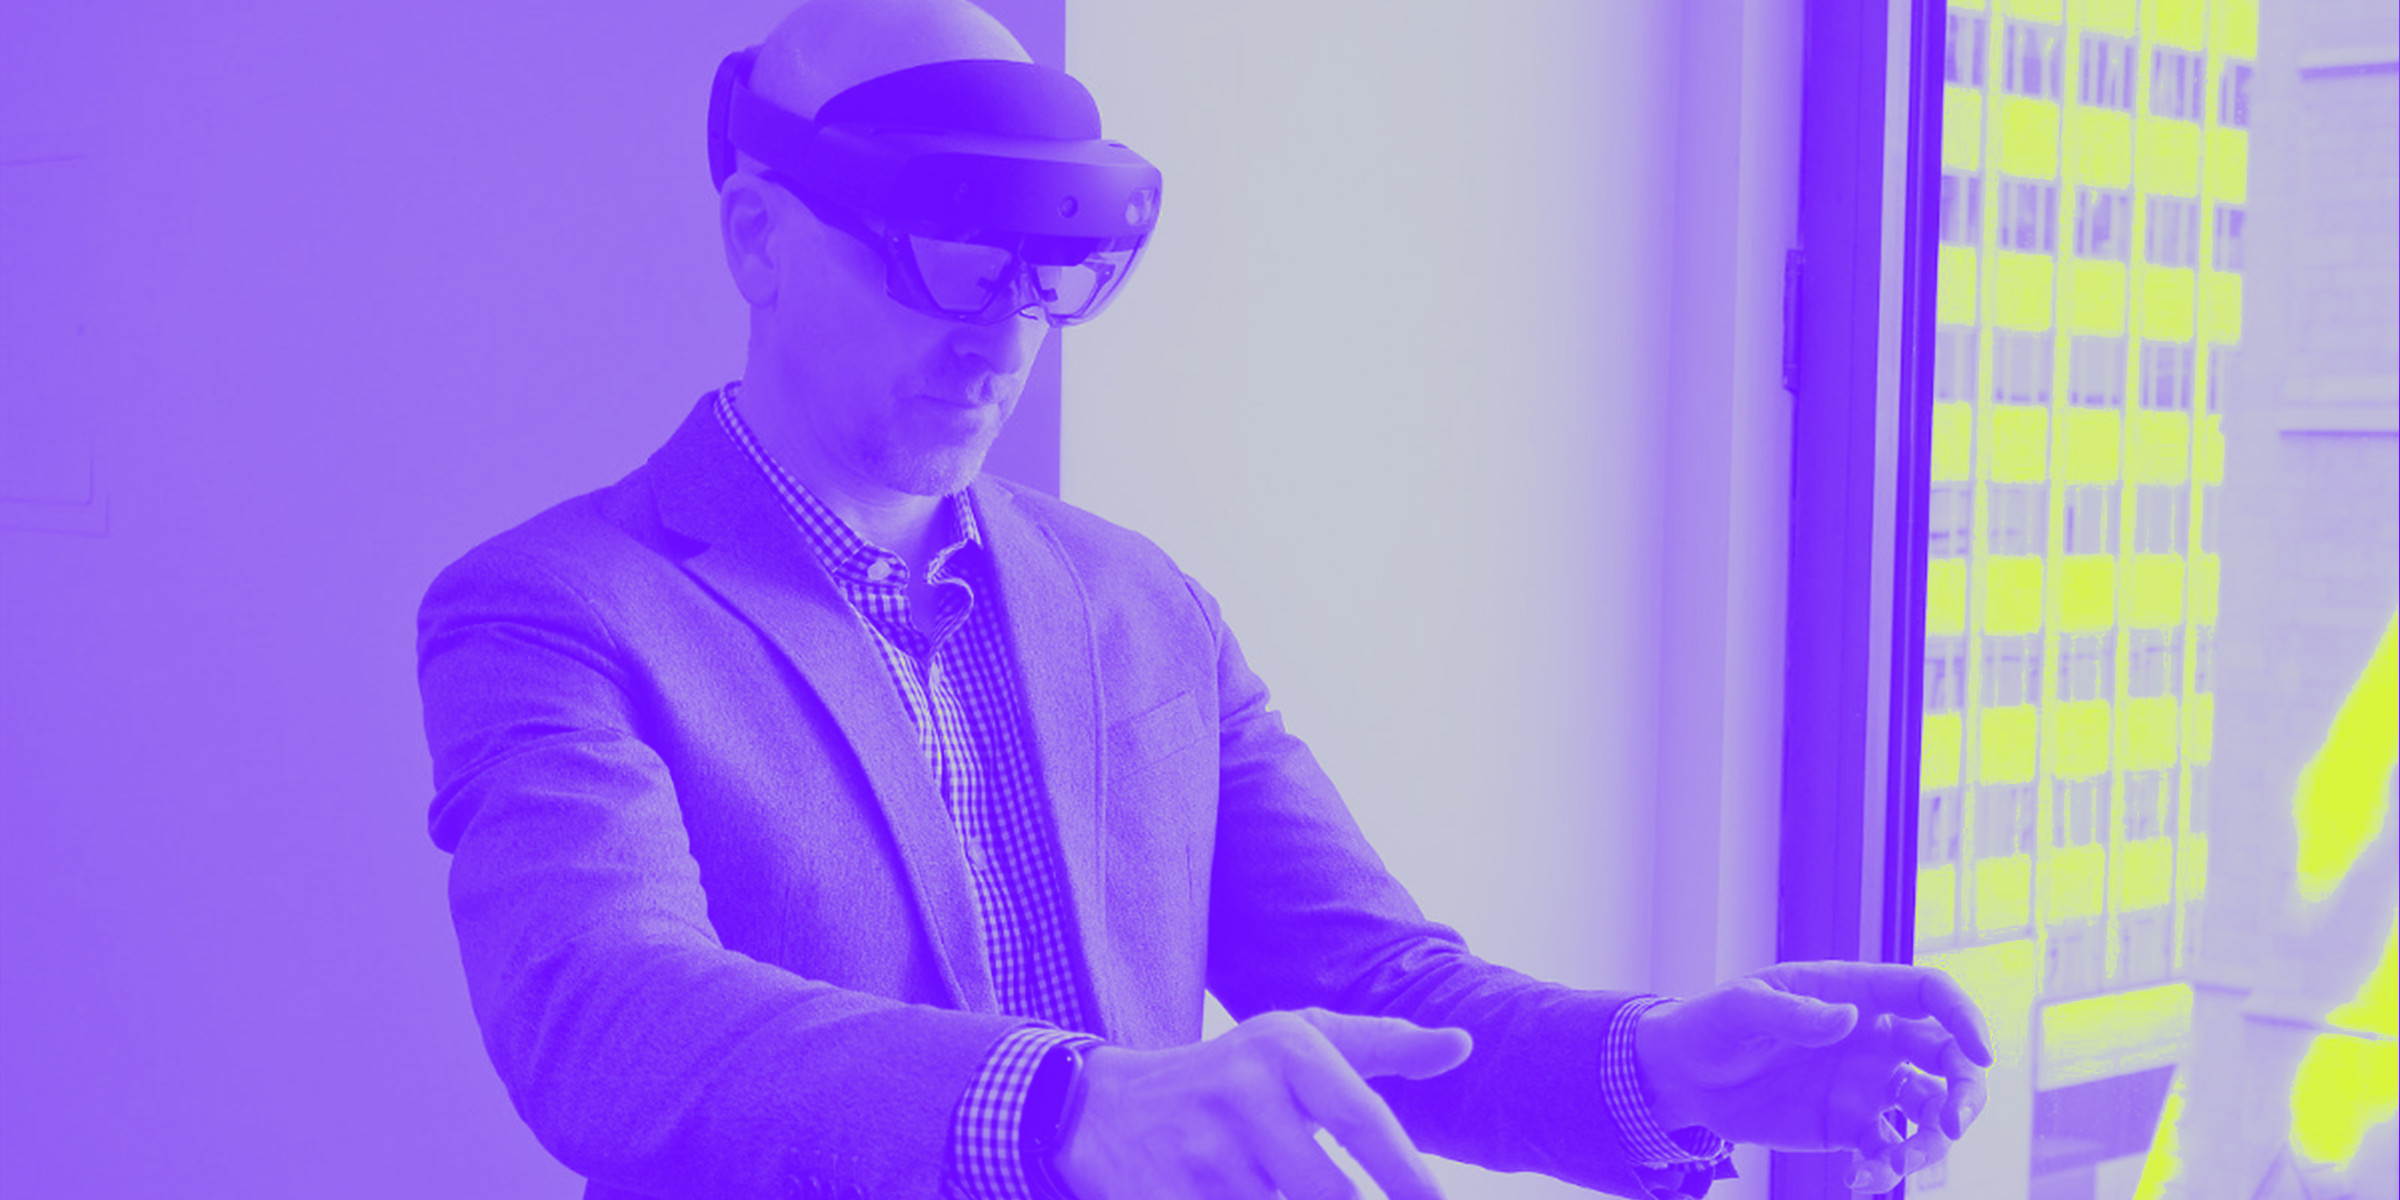 Microsoft Nails 'Mixed Reality' With the HoloLens 2